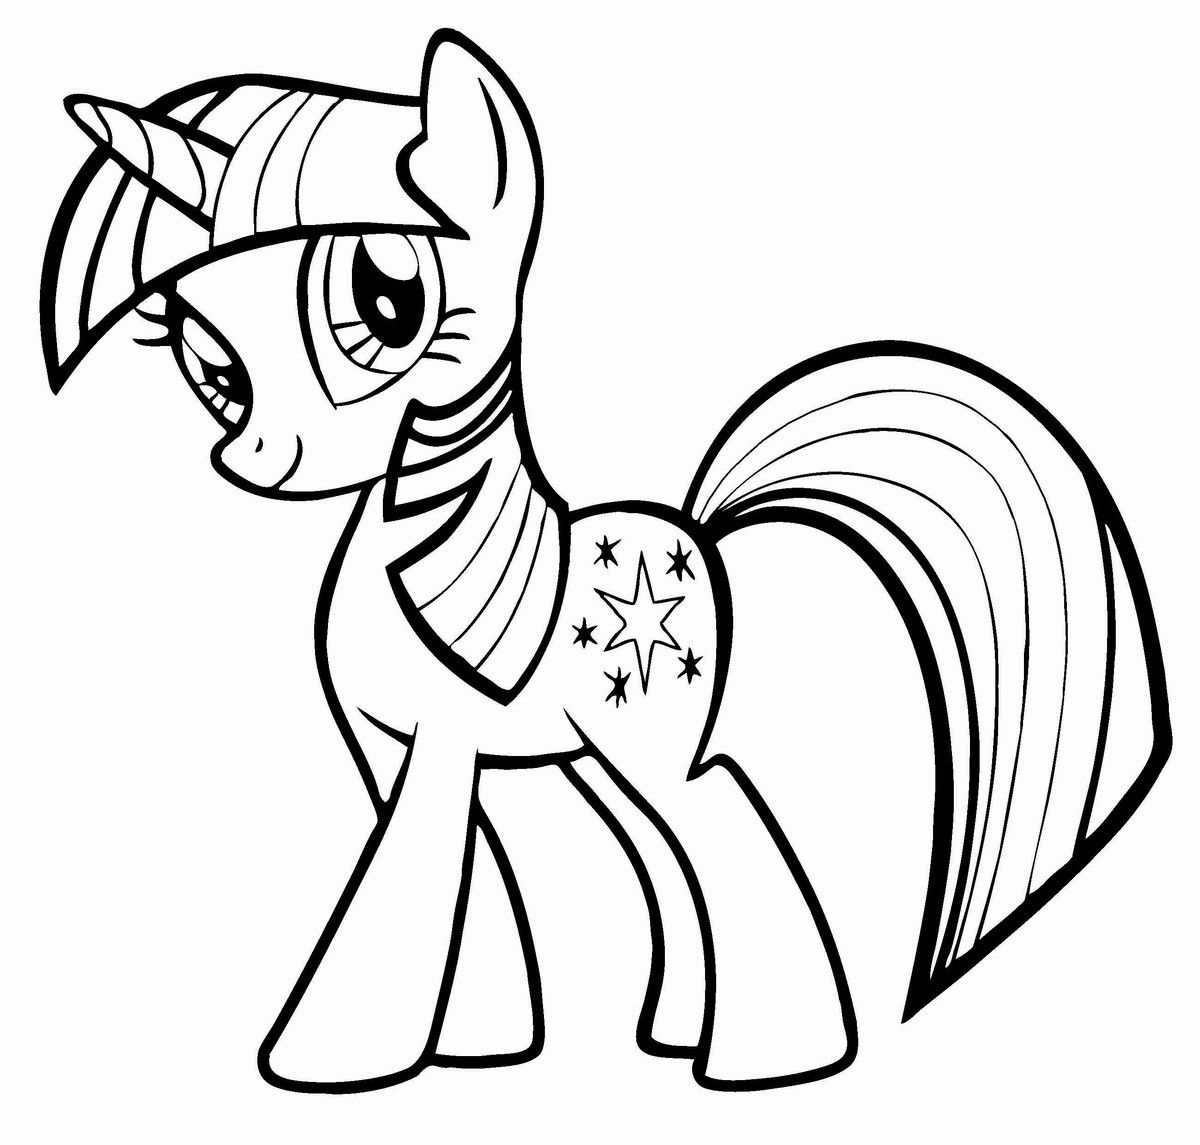 Color My Little Pony From The Thousand Pictures On The Net About Color My Little Pony My Little Pony Coloring My Little Pony Drawing My Little Pony Twilight